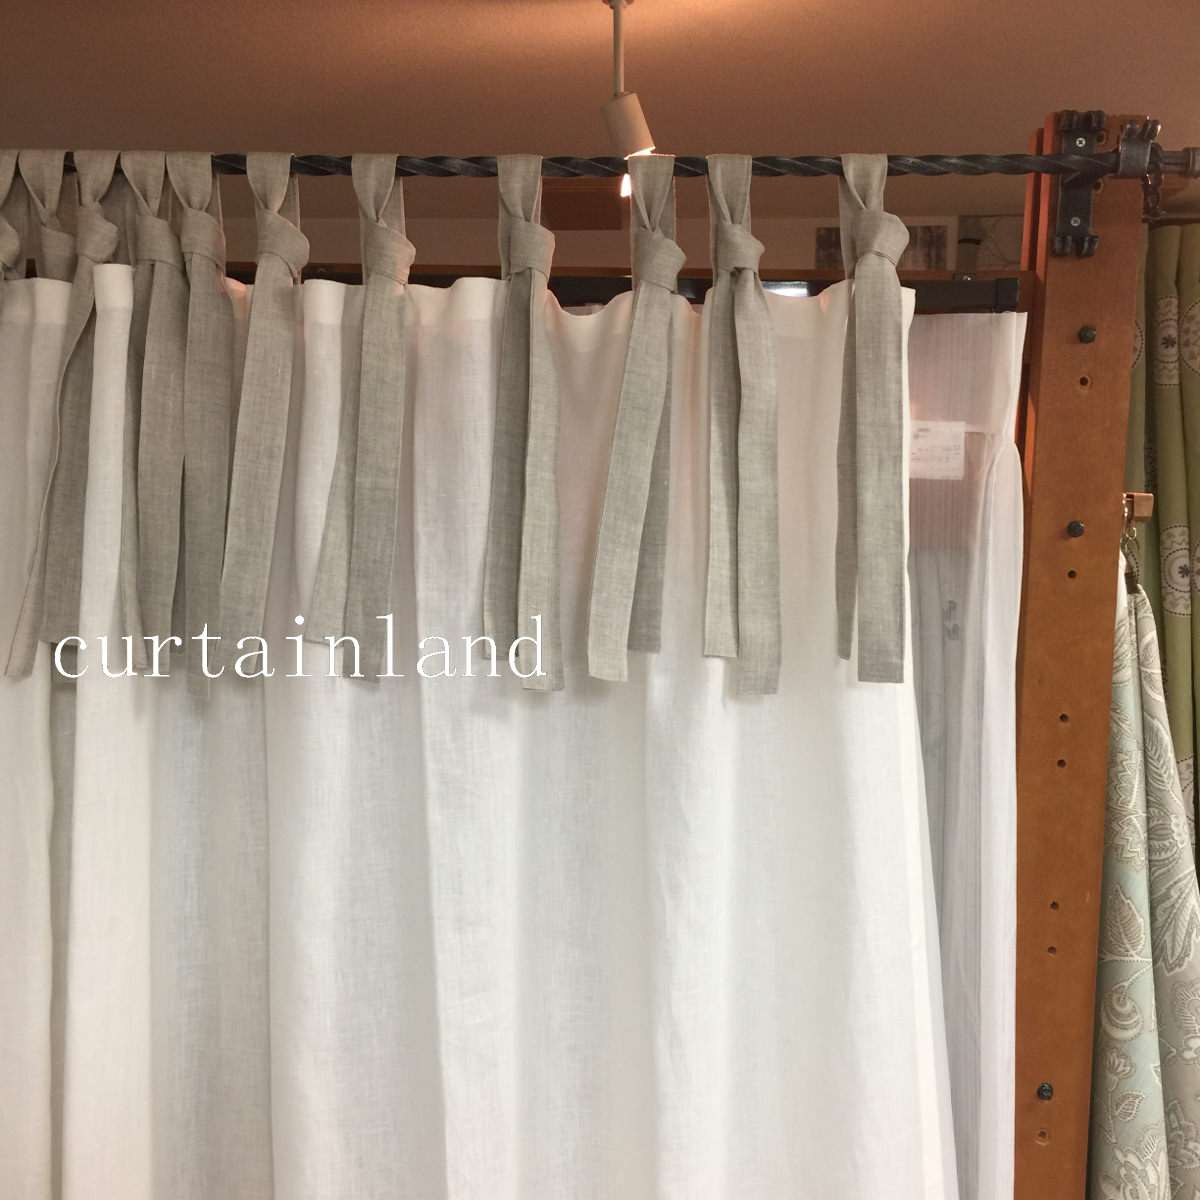 tieknot_curtain